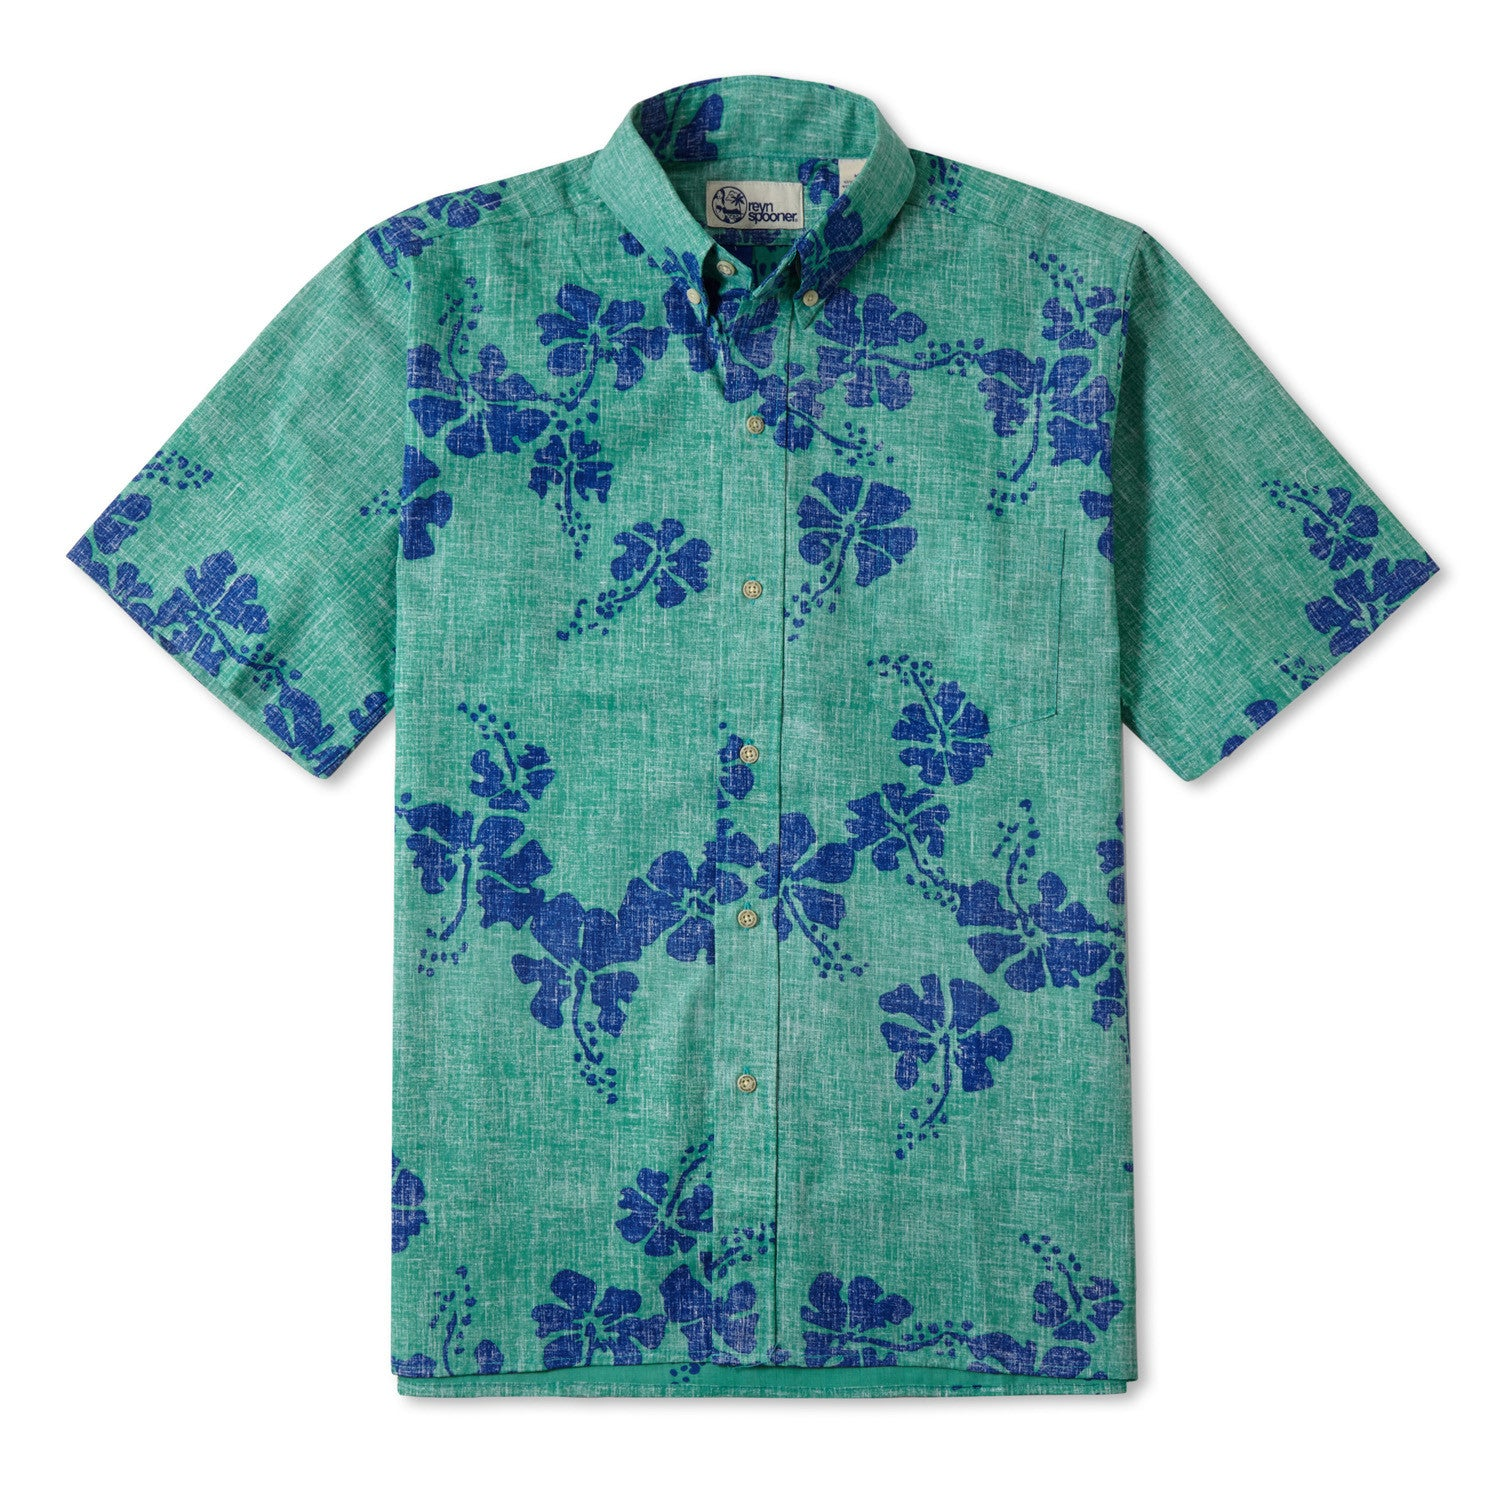 50Th State Flower / Classic Fit Button Front Shirt, Cotton/Polyester, For Men, 2XL, Mint Green, From Reyn Spooner